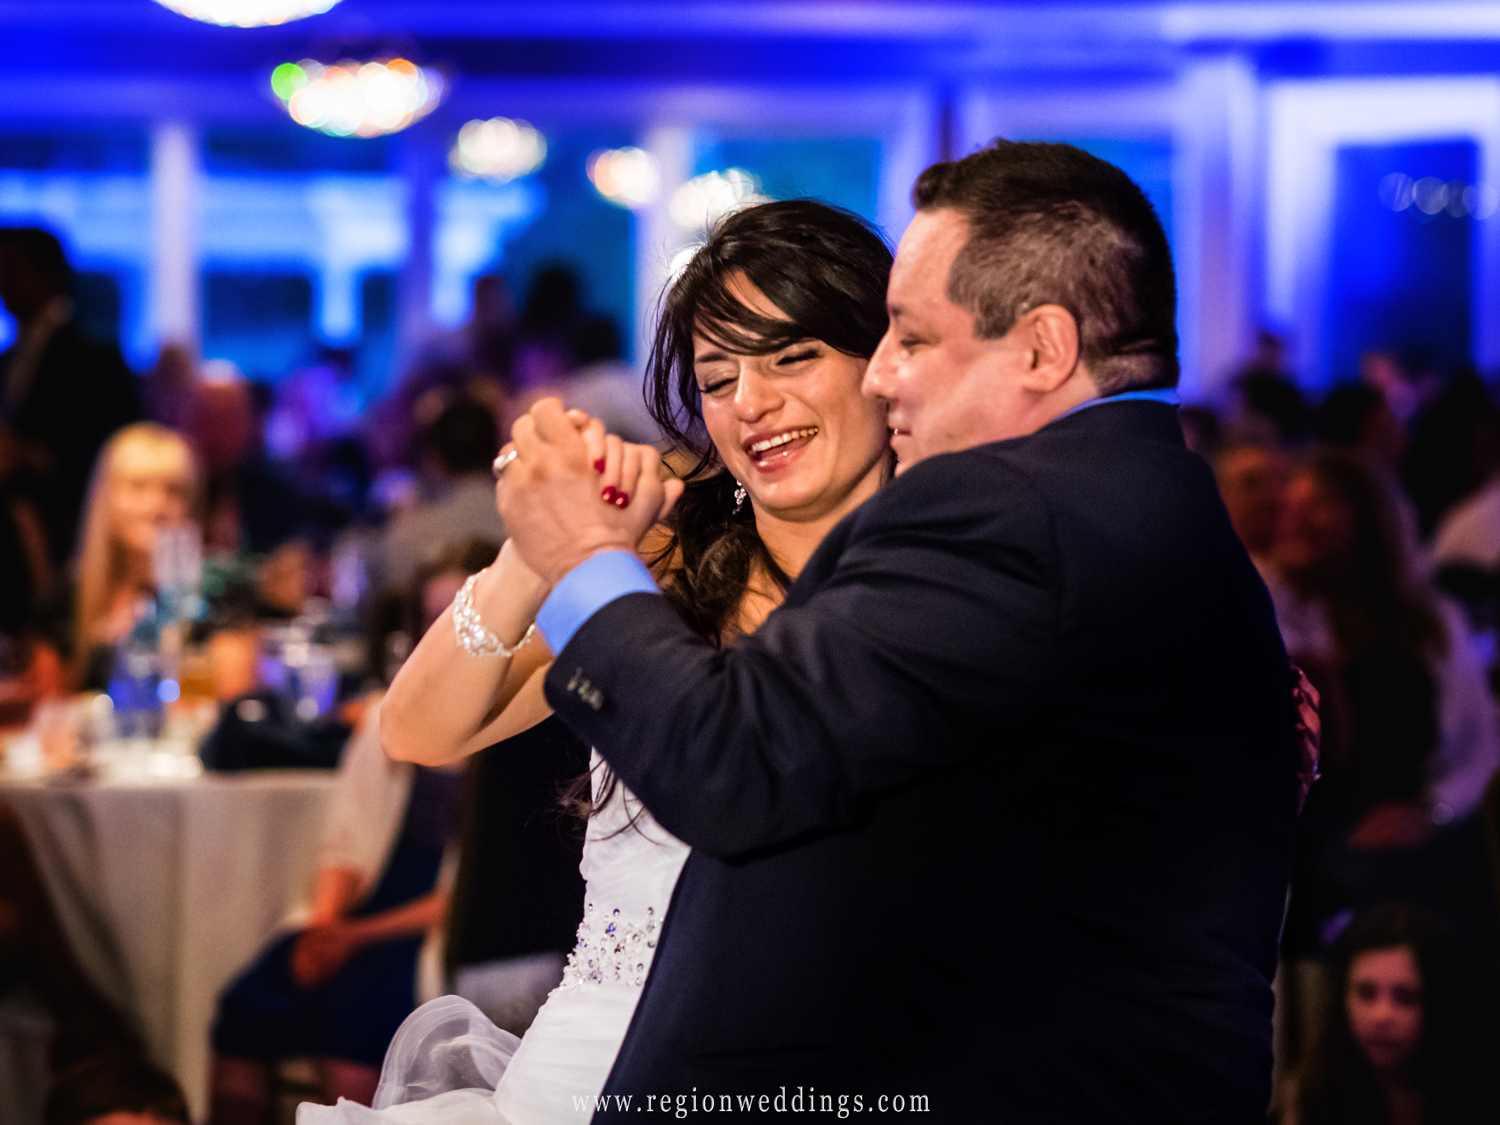 Pure joy during the father daughter dance at White Hawk Country Club.